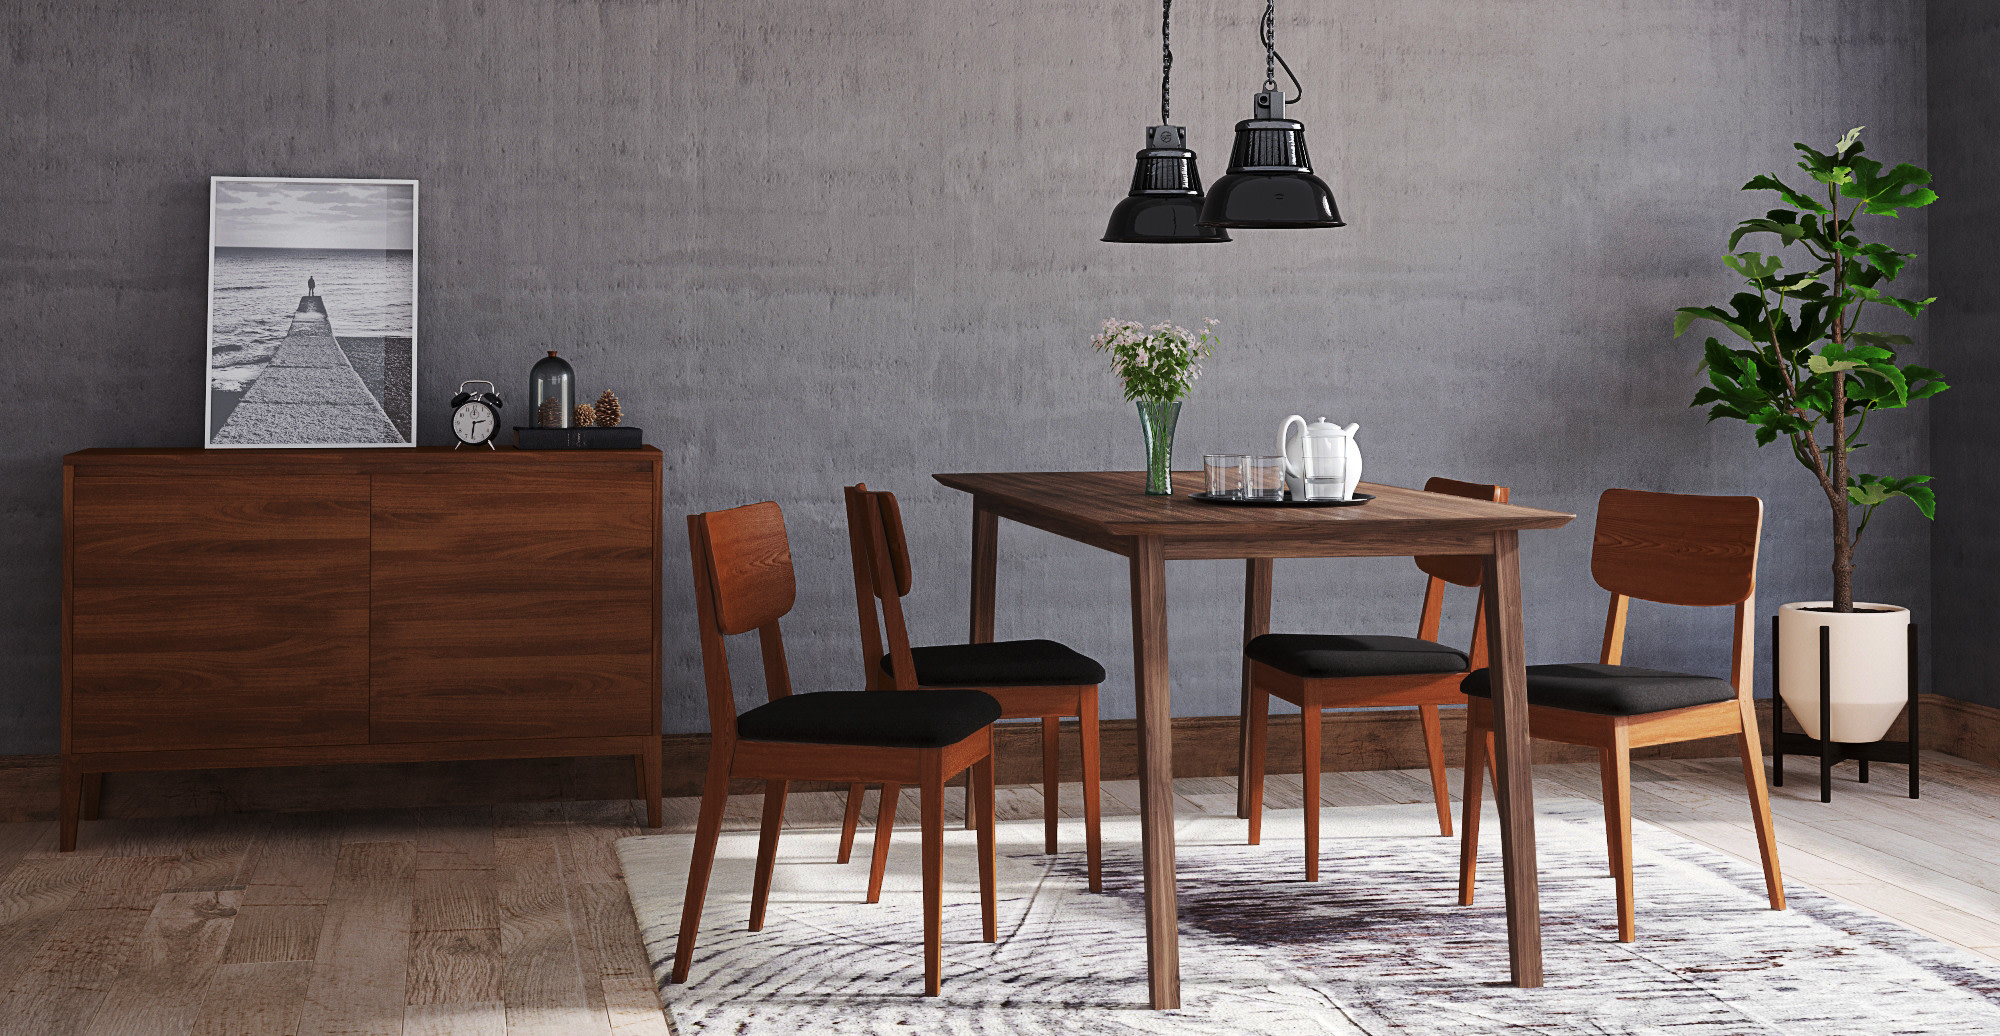 bristol-dining-table-4-mokuzai-dining-chairs-1-product-front